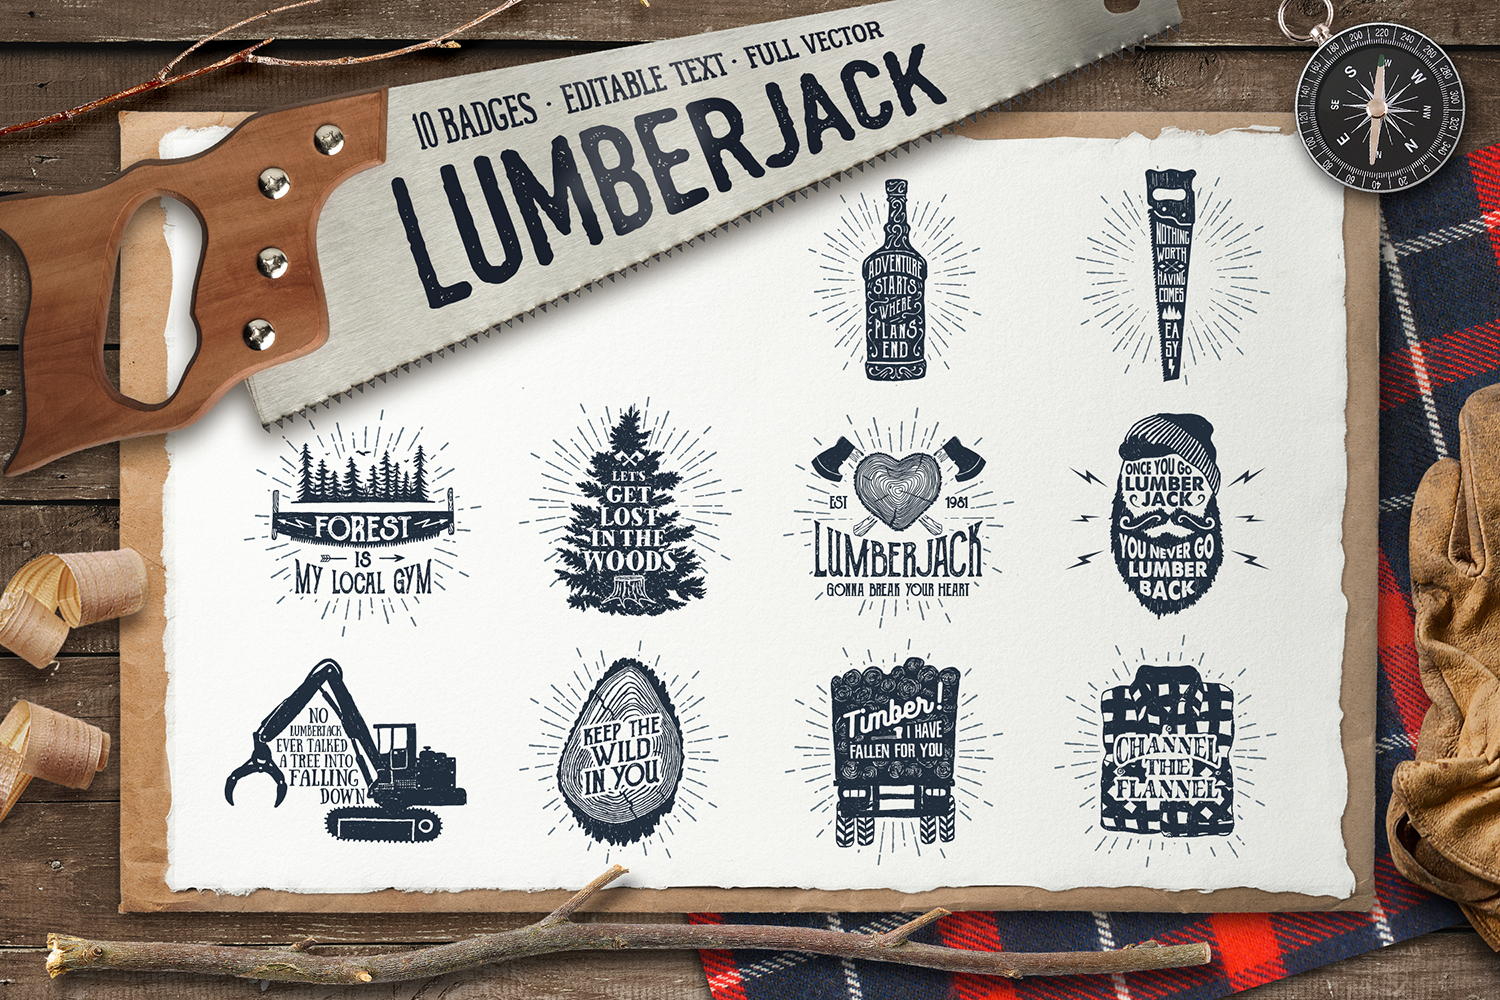 Lumberjack - Vintage Badges Graphic By Cosmic Store Image 1